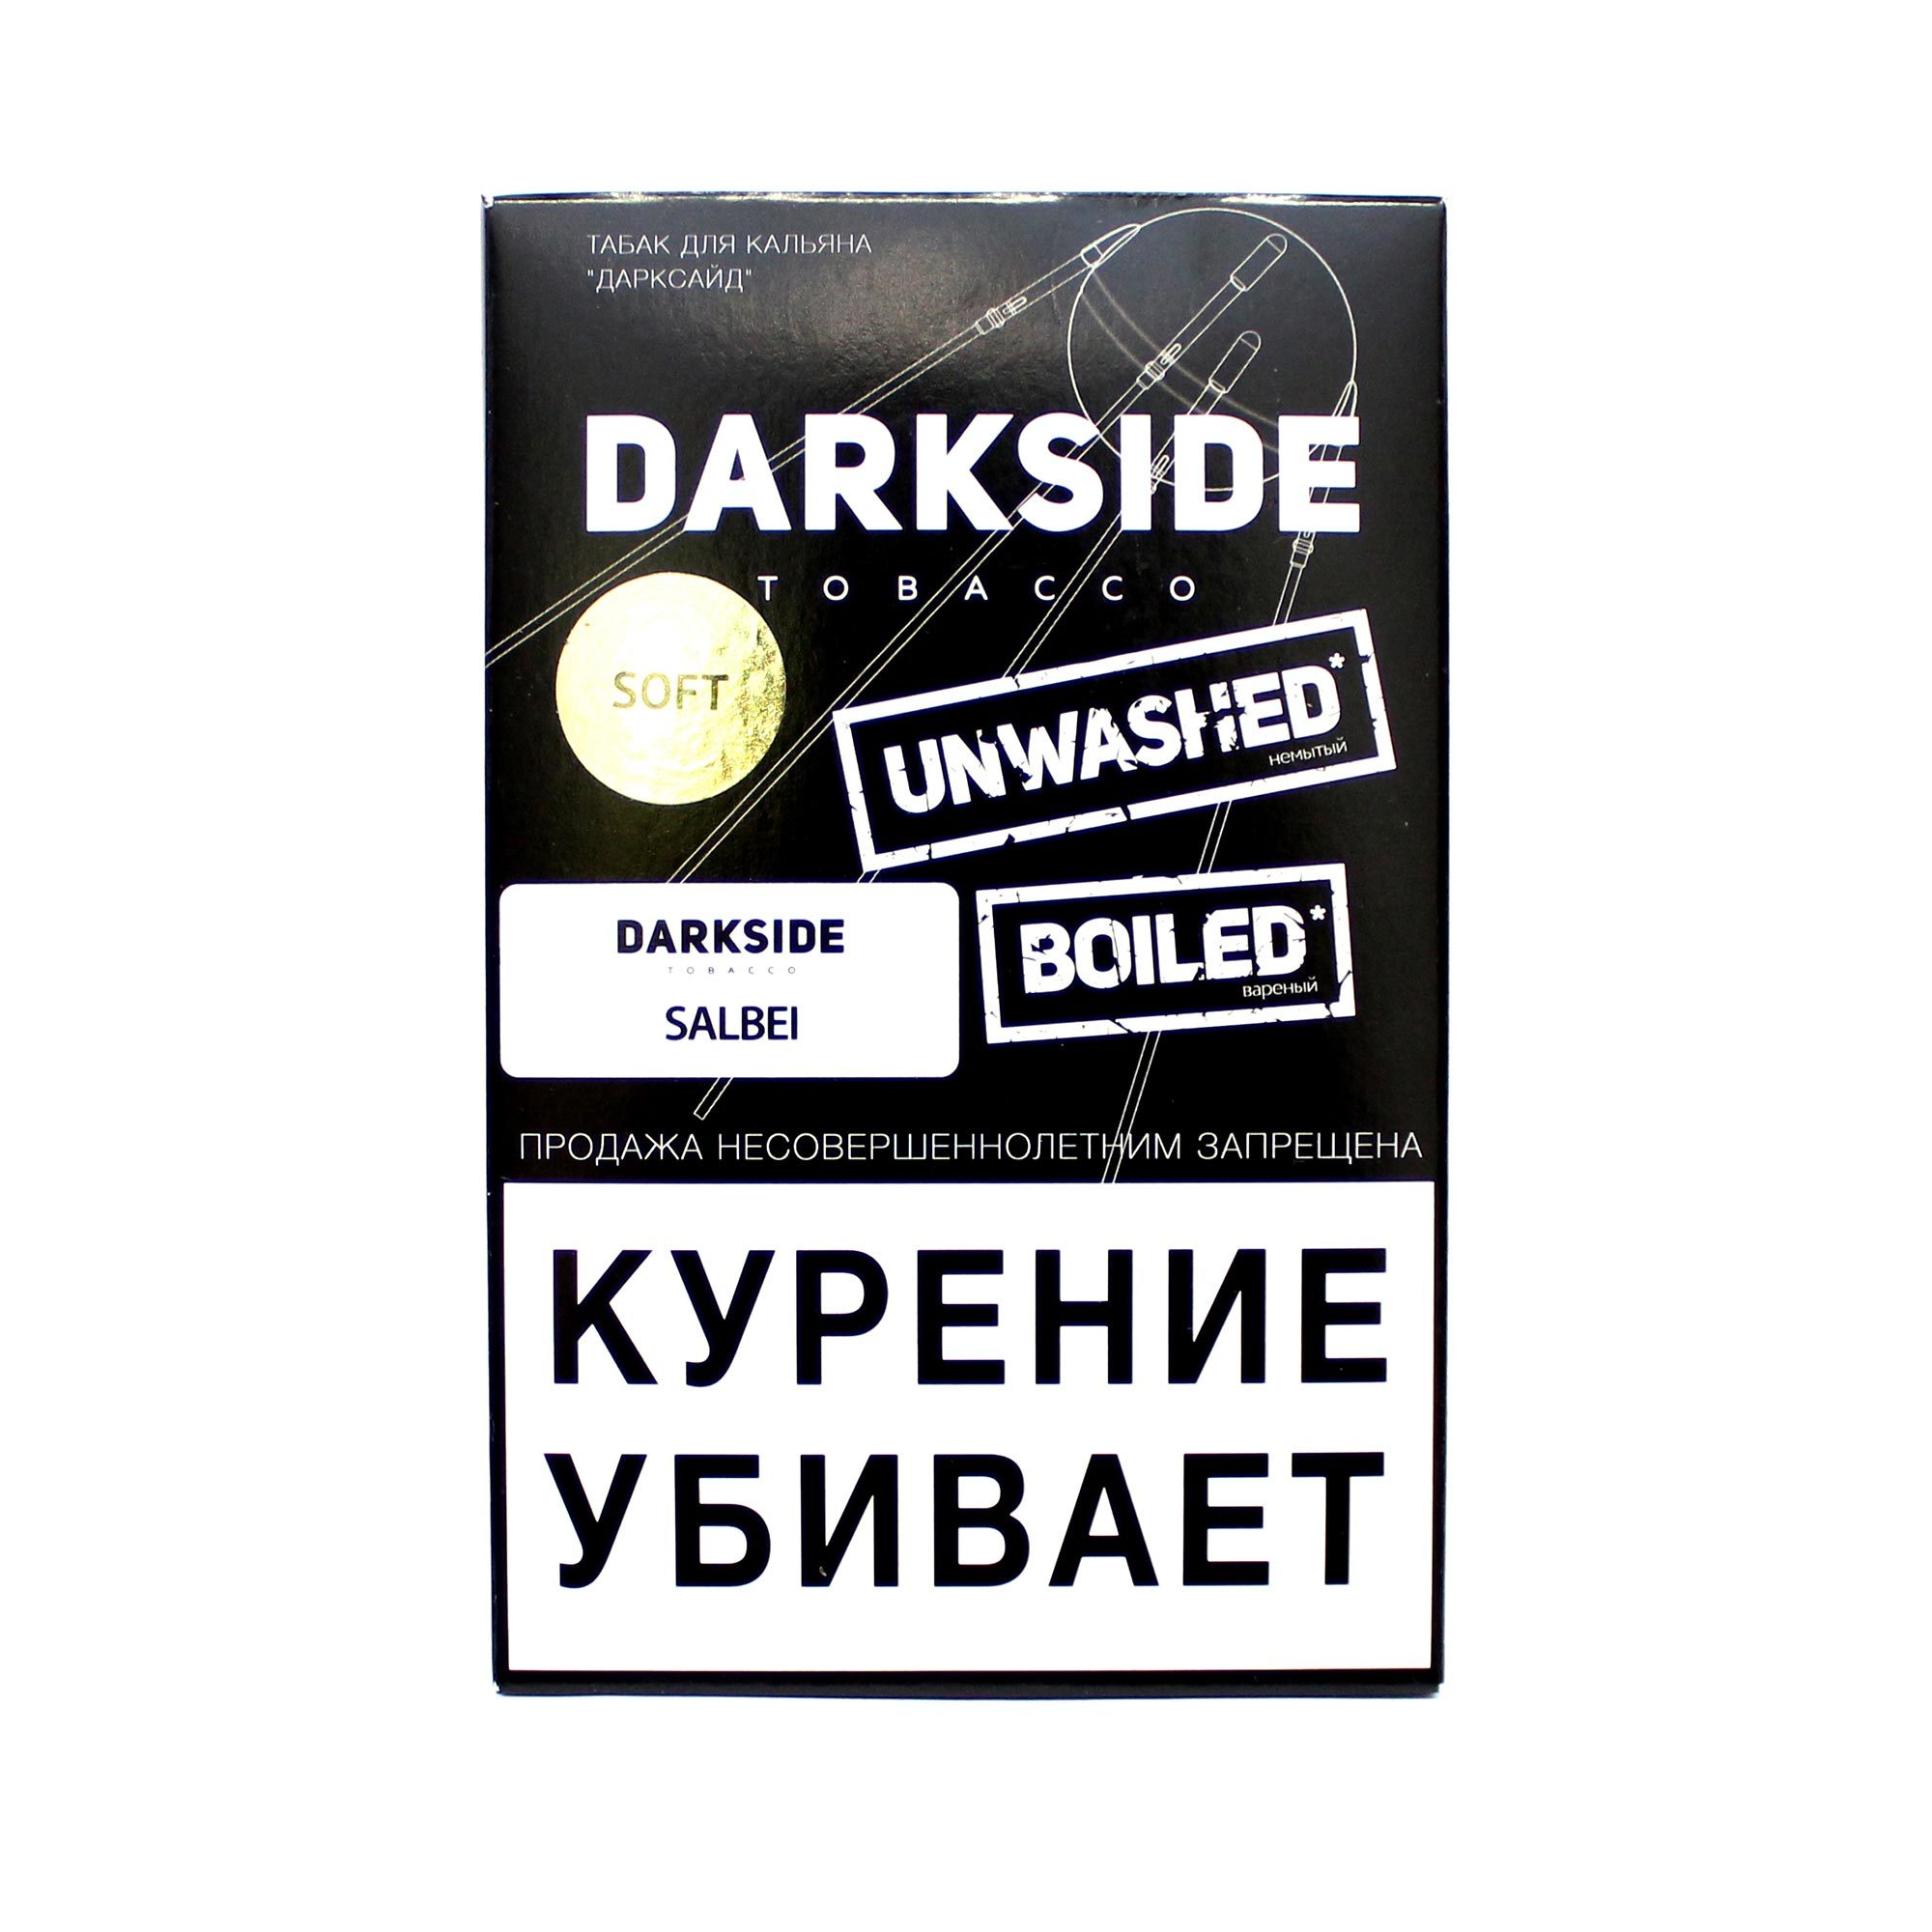 Табак для кальяна Dark Side Soft 100 гр.Salbei